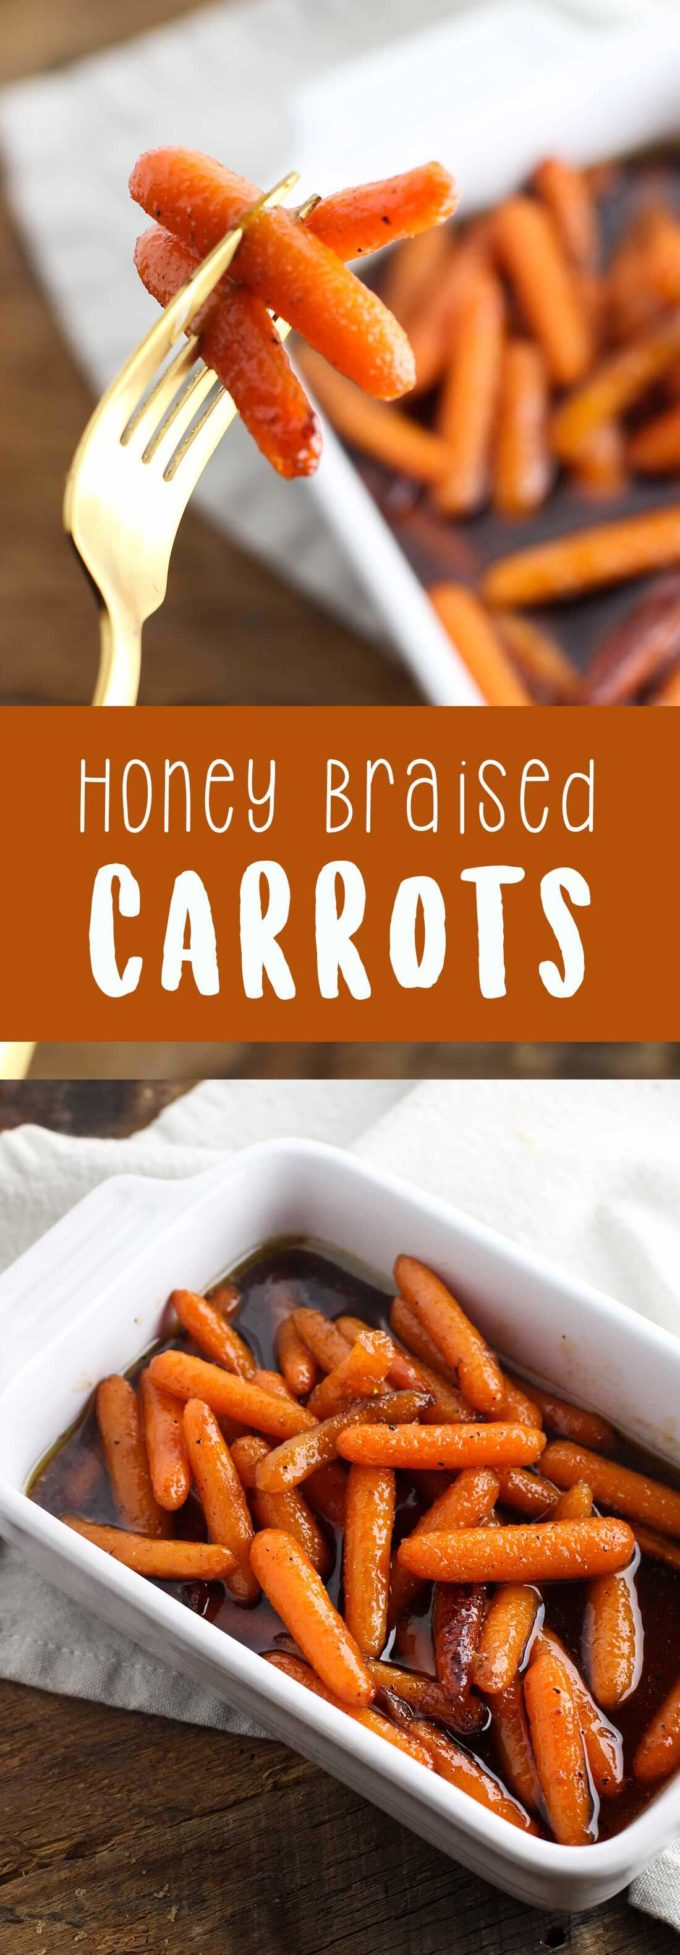 Delicious honey braised carrots perfect for a side dish